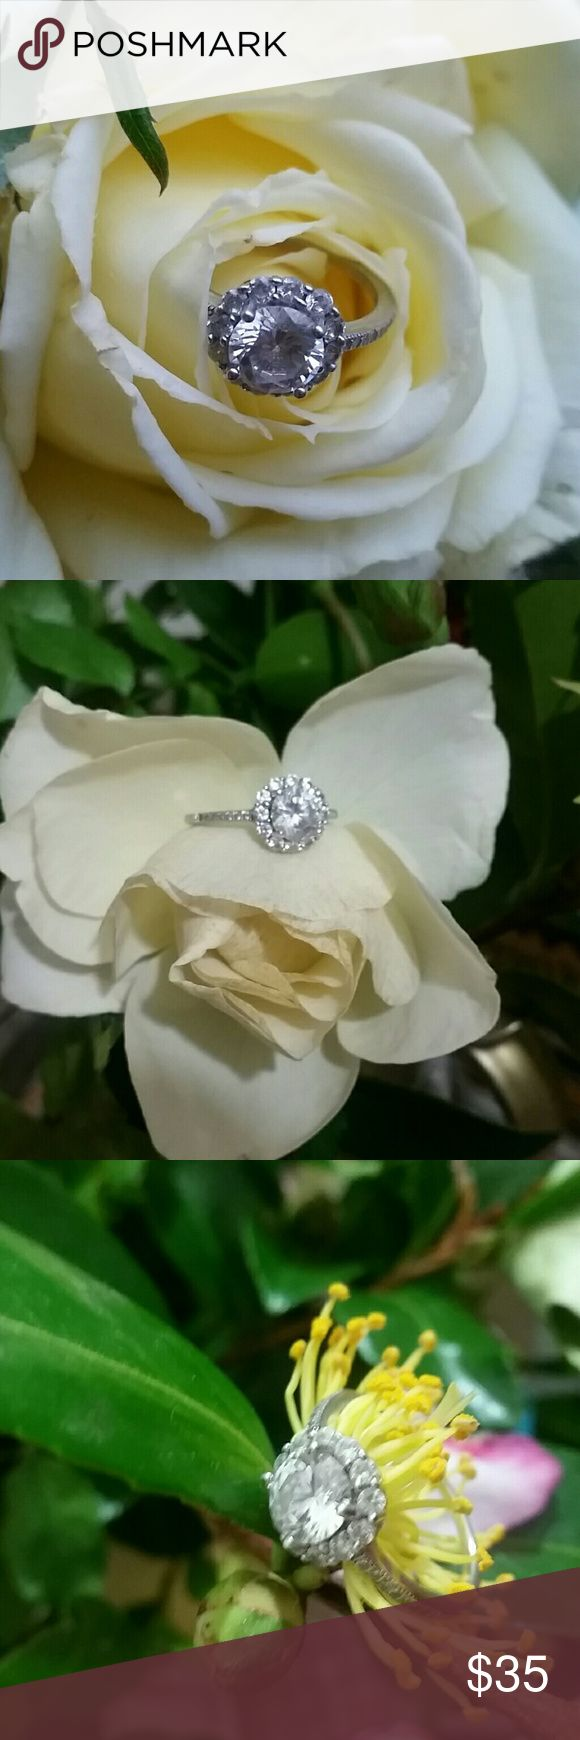 STERLING SILVER 3 KARAT CZ RING SIZE 7 Stunning, a sparkling cubic zirconia and sterling silver ring.  Looks like the real thing, and will bring you lots of compliments. Jewelry Rings